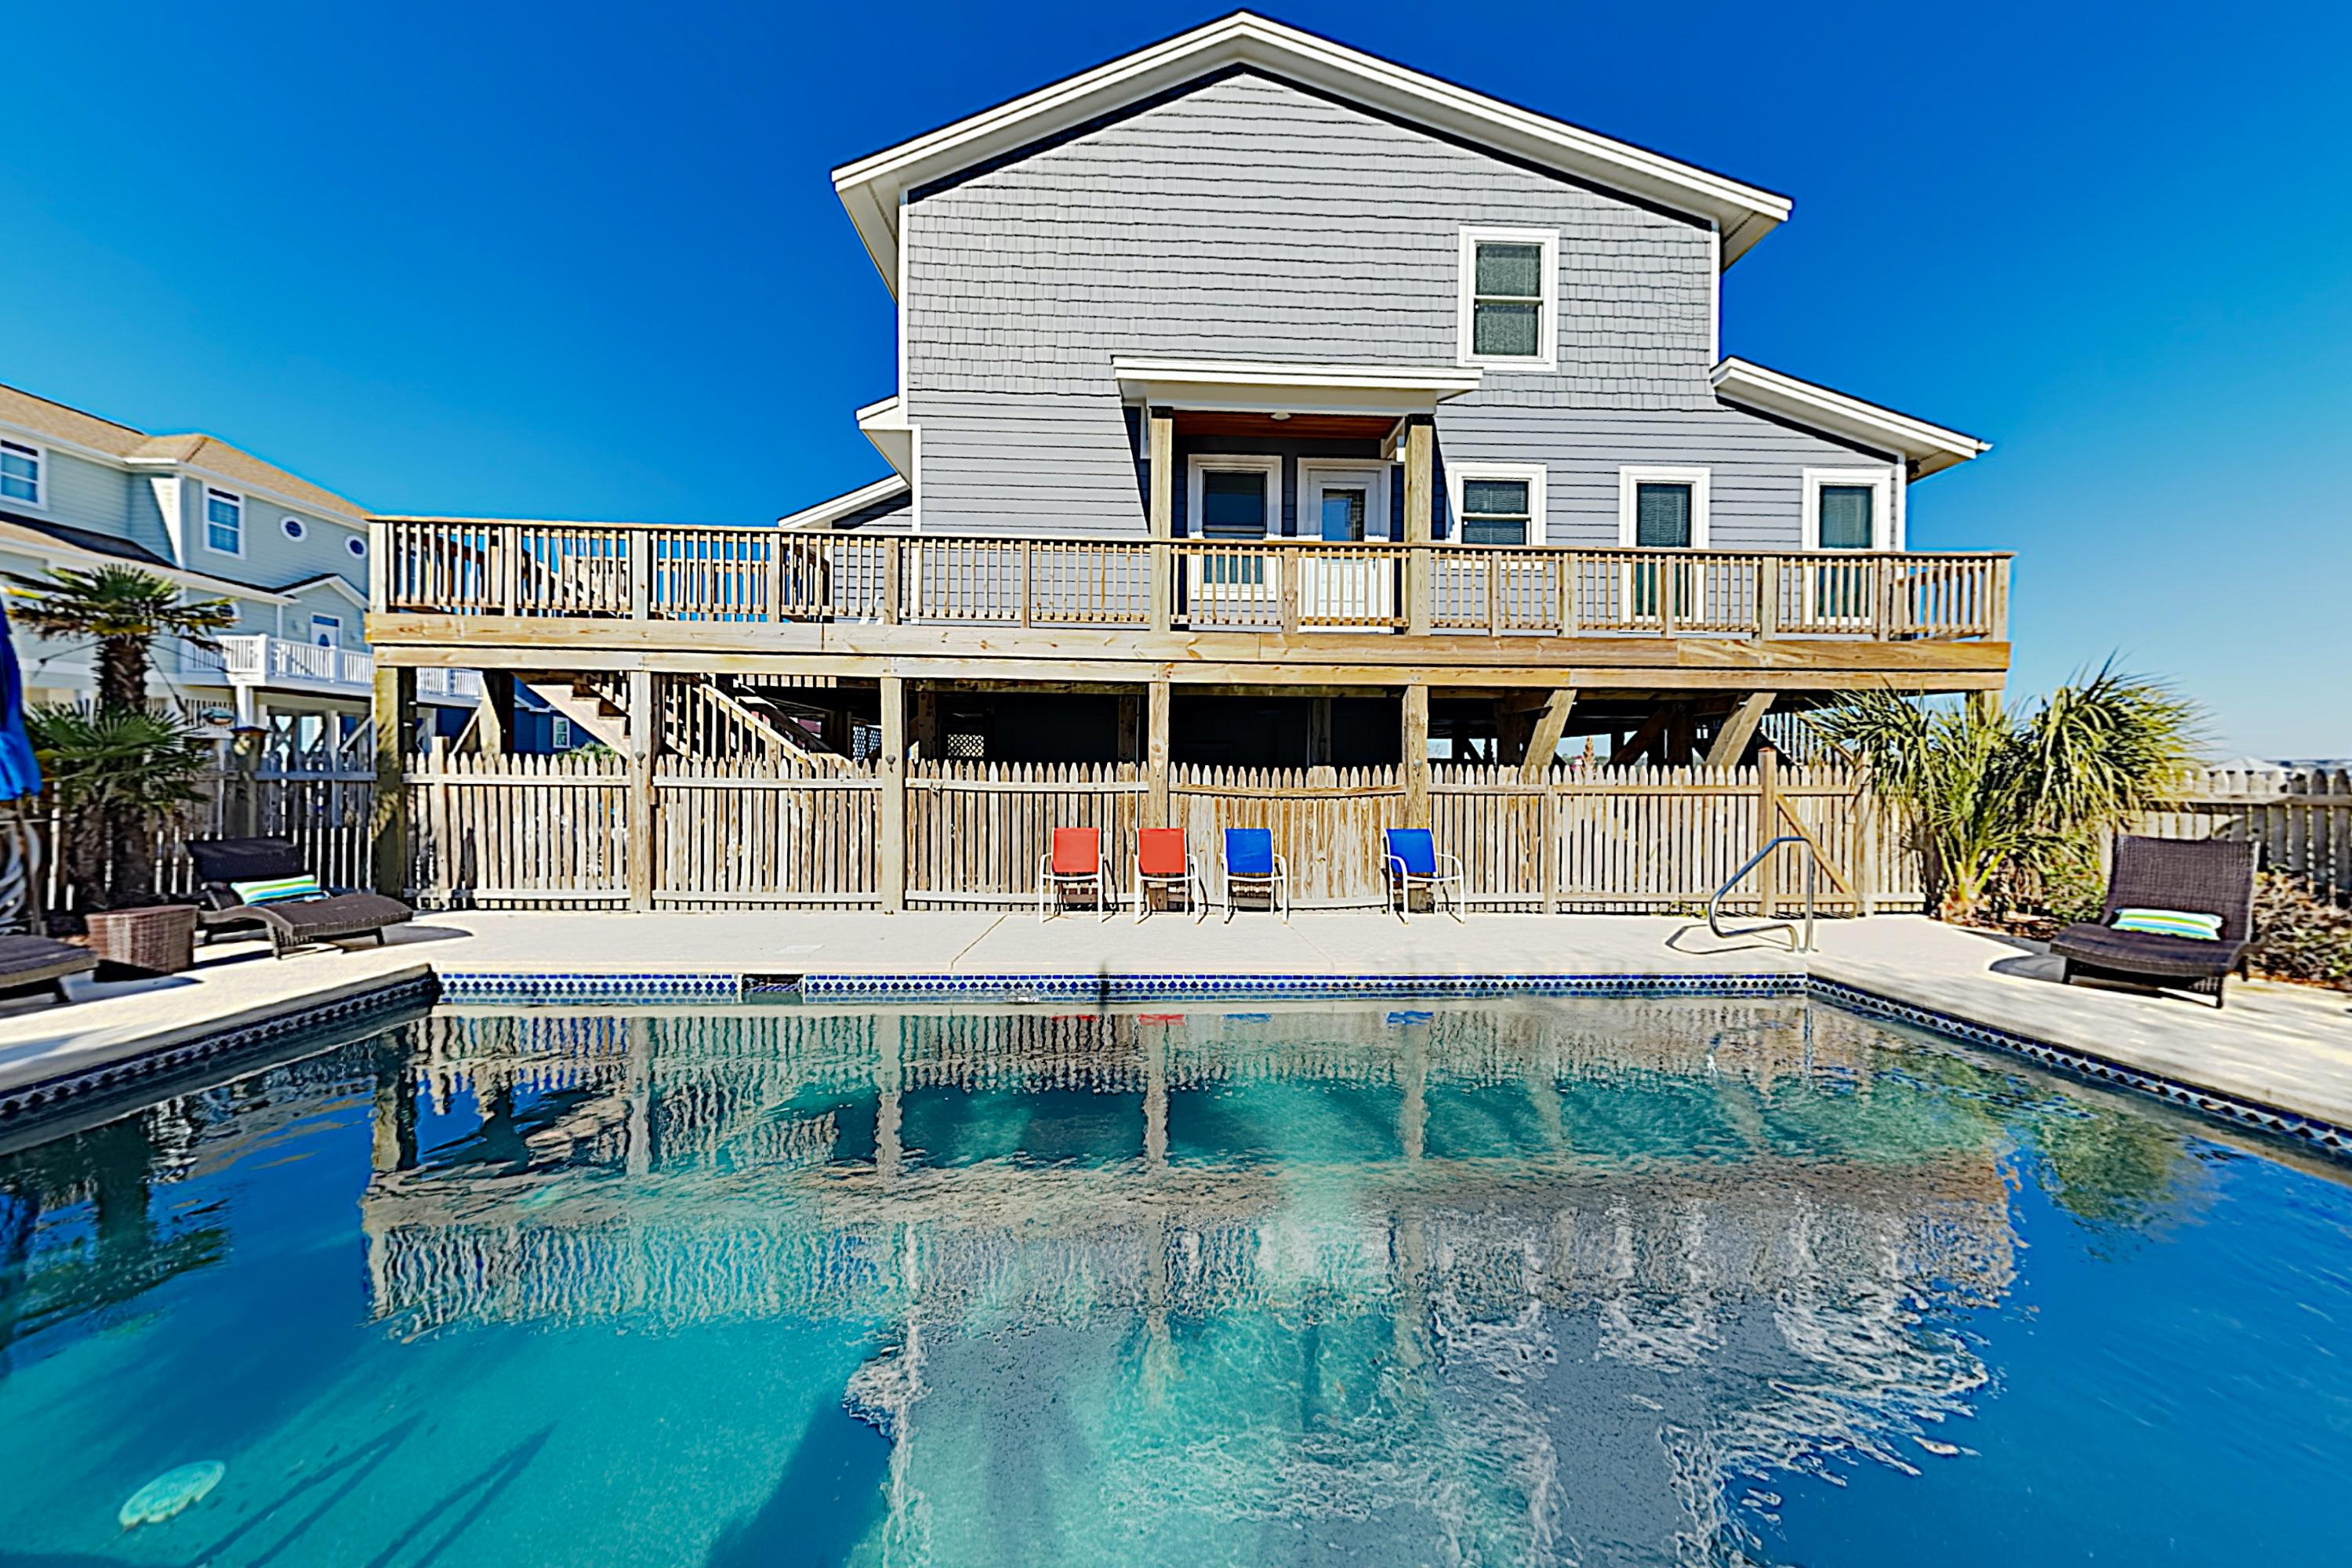 Welcome to Ocean Isle Beach! This home is professionally managed by TurnKey Vacation Rentals. Delight in your own private coastal oasis, complete with a private pool.